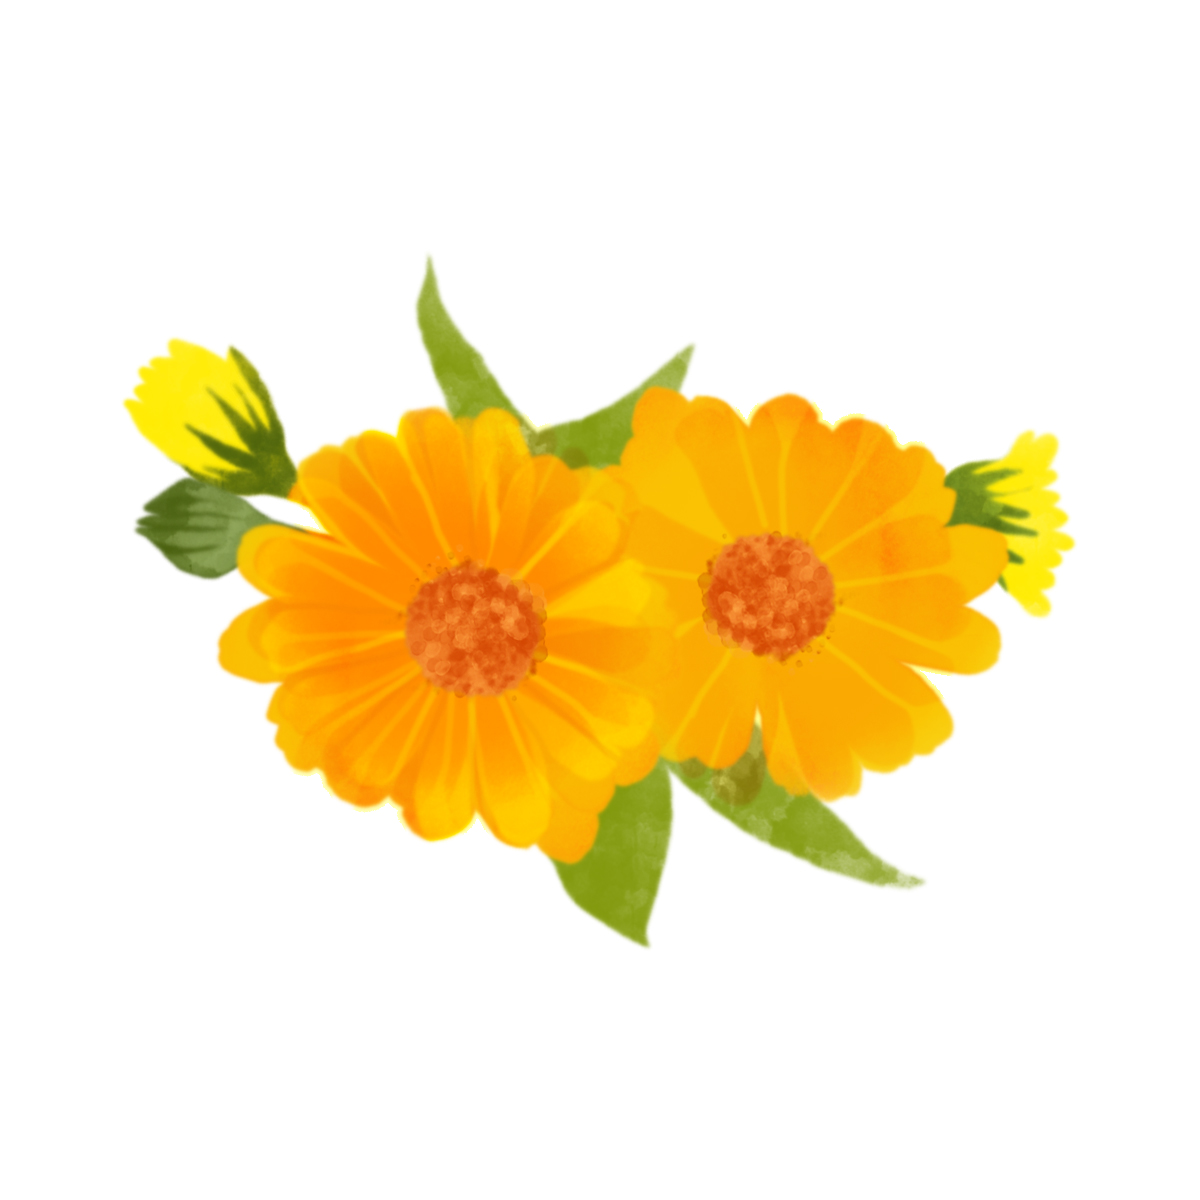 Picture for Calendula